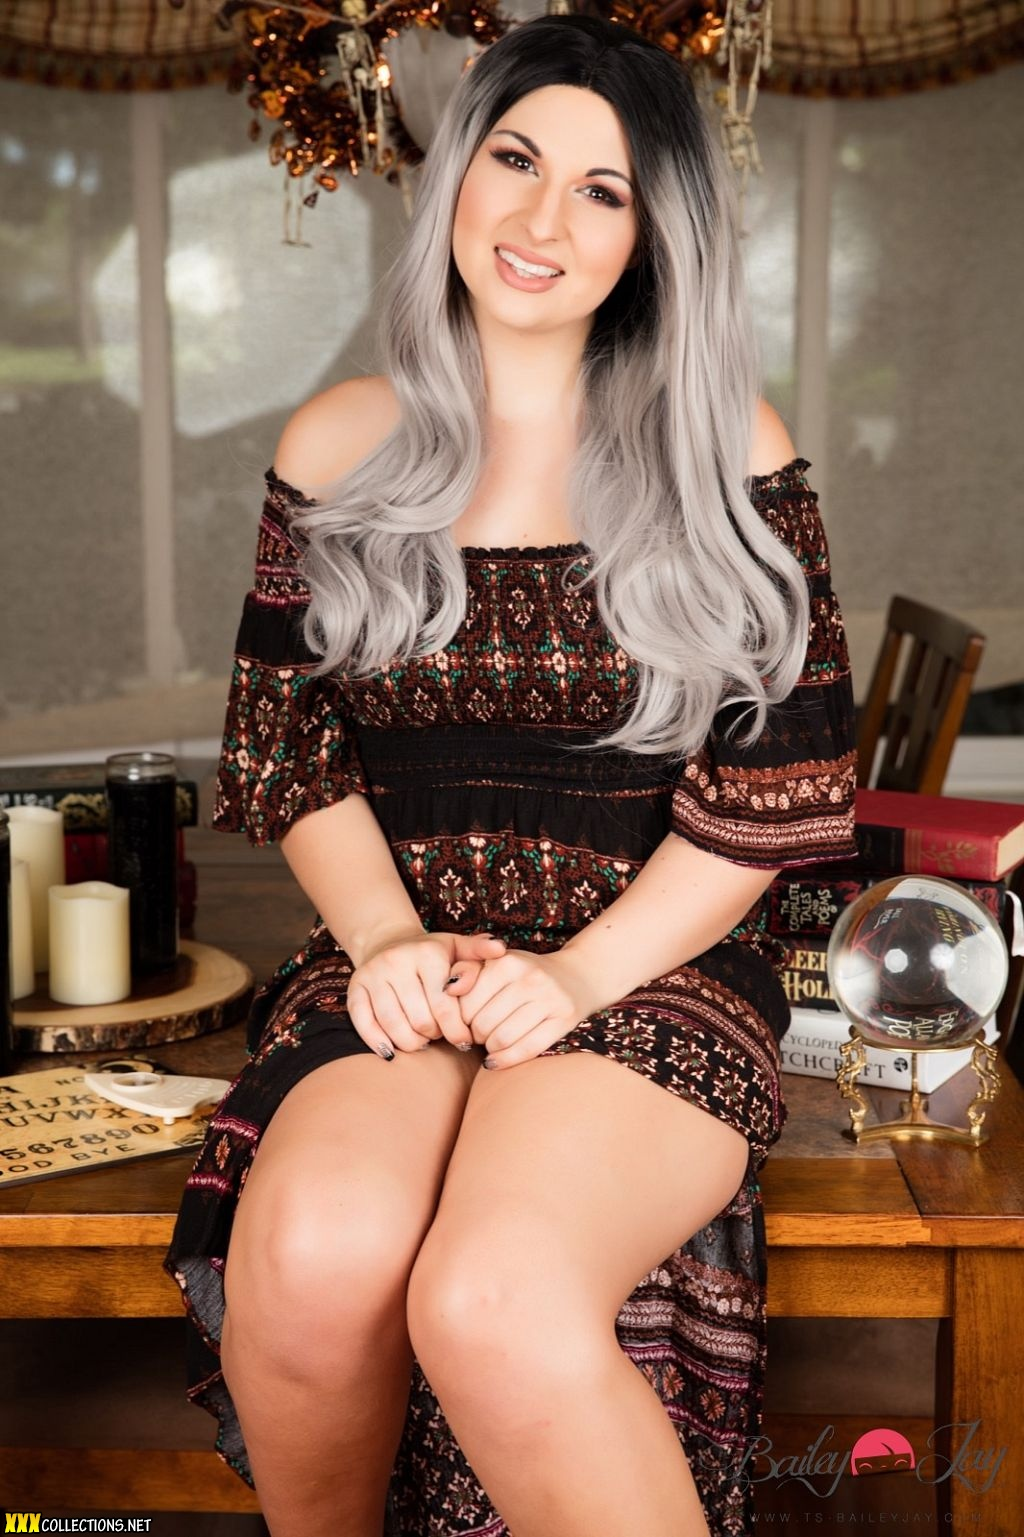 bailey jay videos